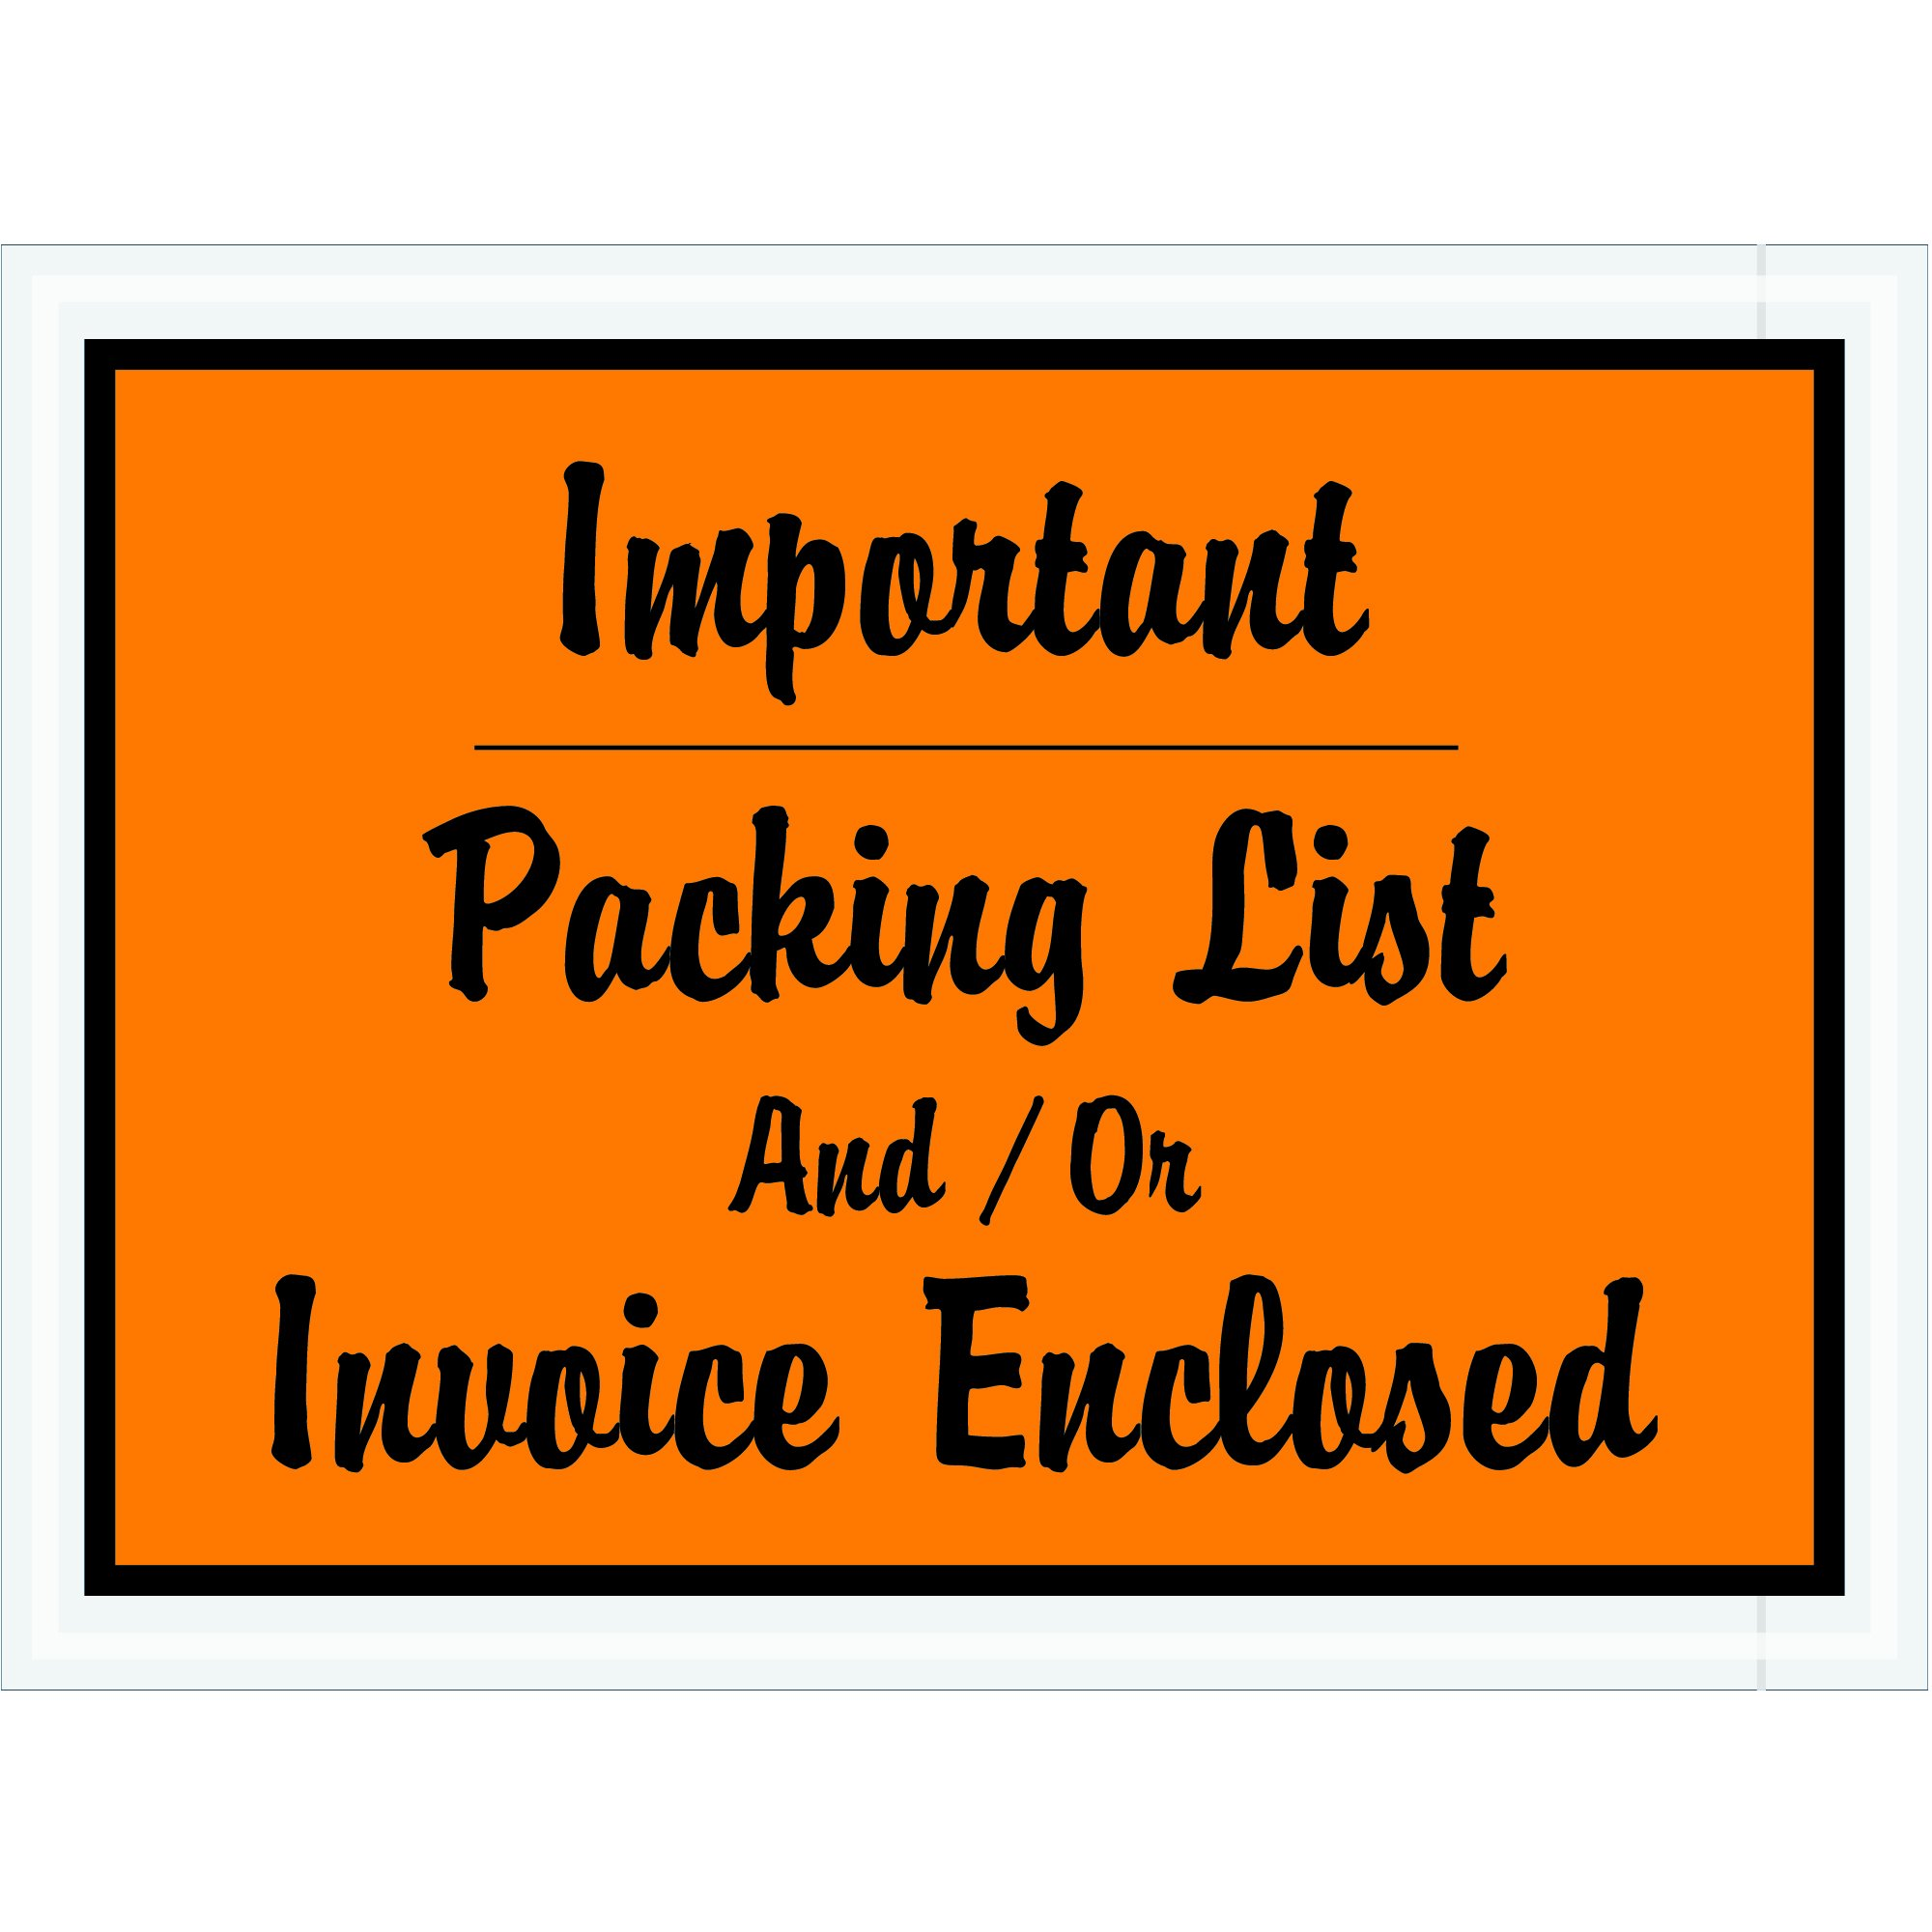 Tape Logic TLPL4''Important Packing List And/Or Invoice Enclosed'' Envelopes, 4 1/2'' x 6'', Orange (Pack of 1000) by Tape Logic